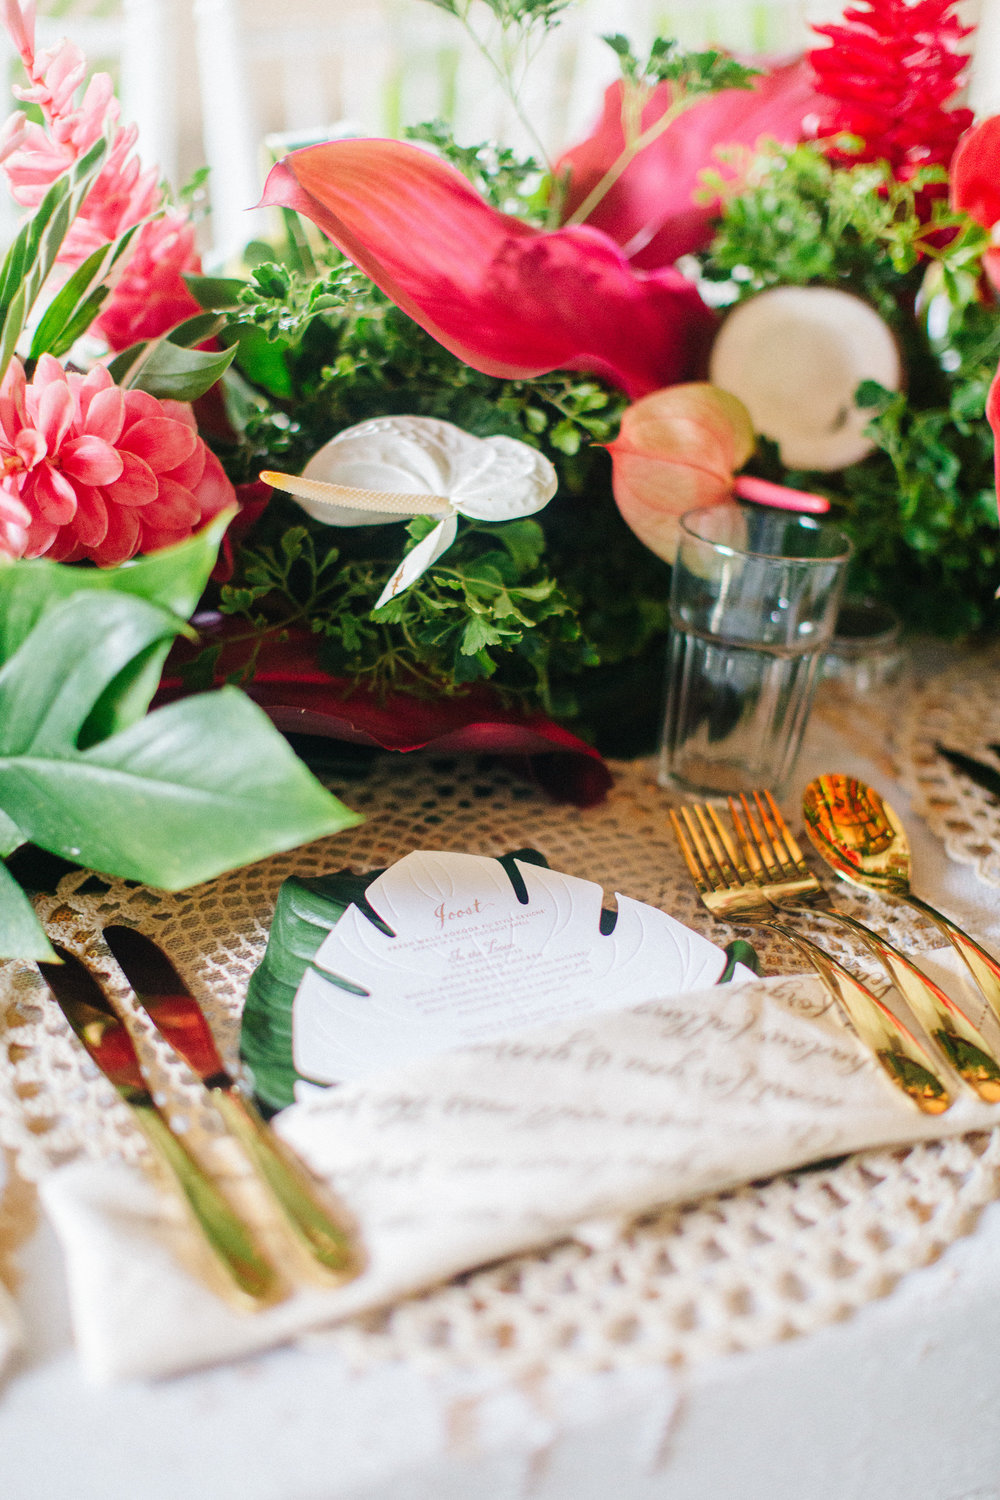 destination_fiji_wedding_tropical_flowers_centrepiece_gold_cutlery.jpg